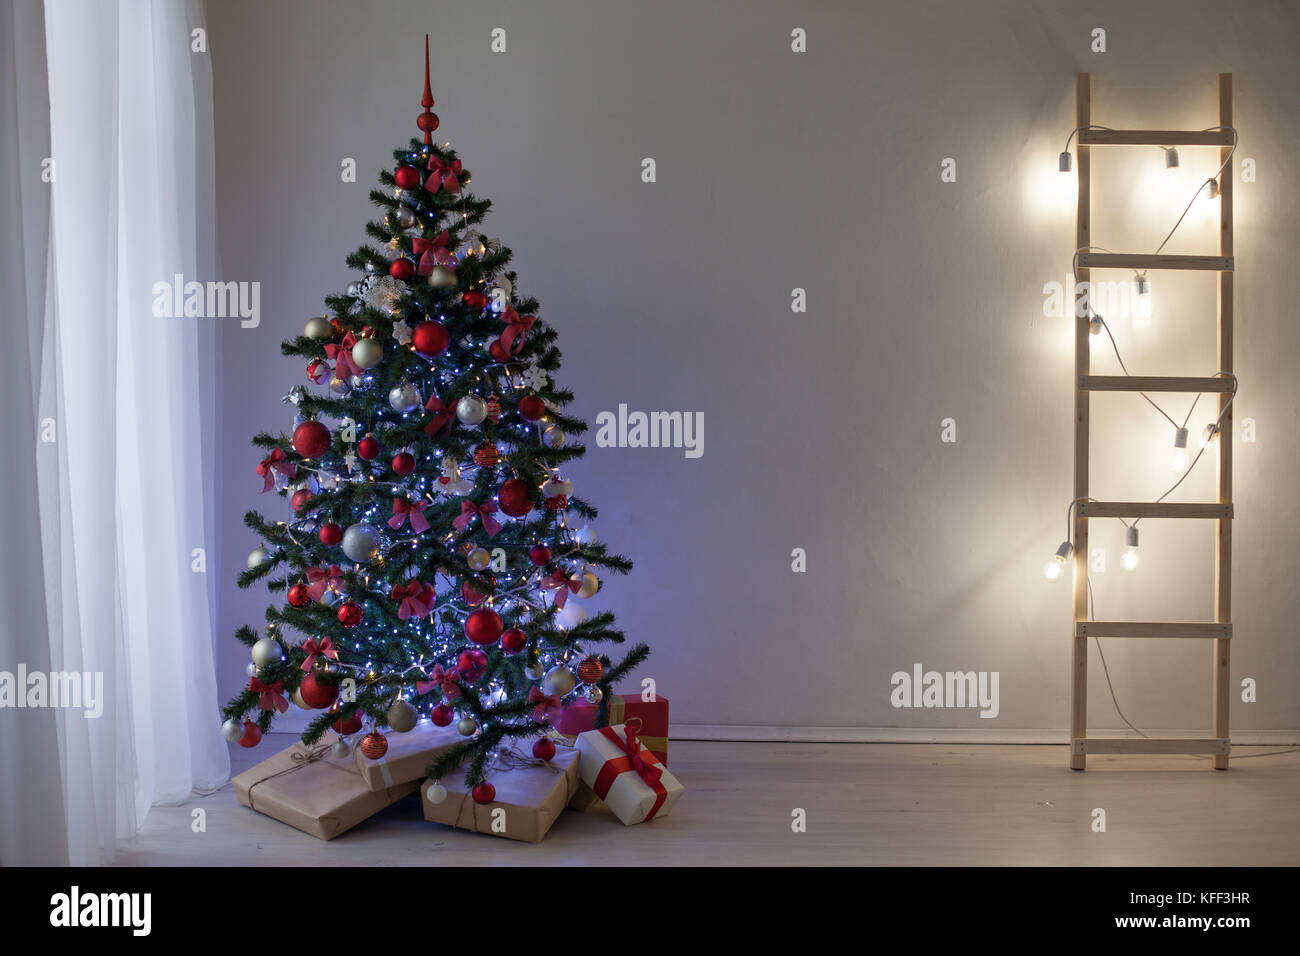 Christmas And New Year 2018 Gifts Tree Decor